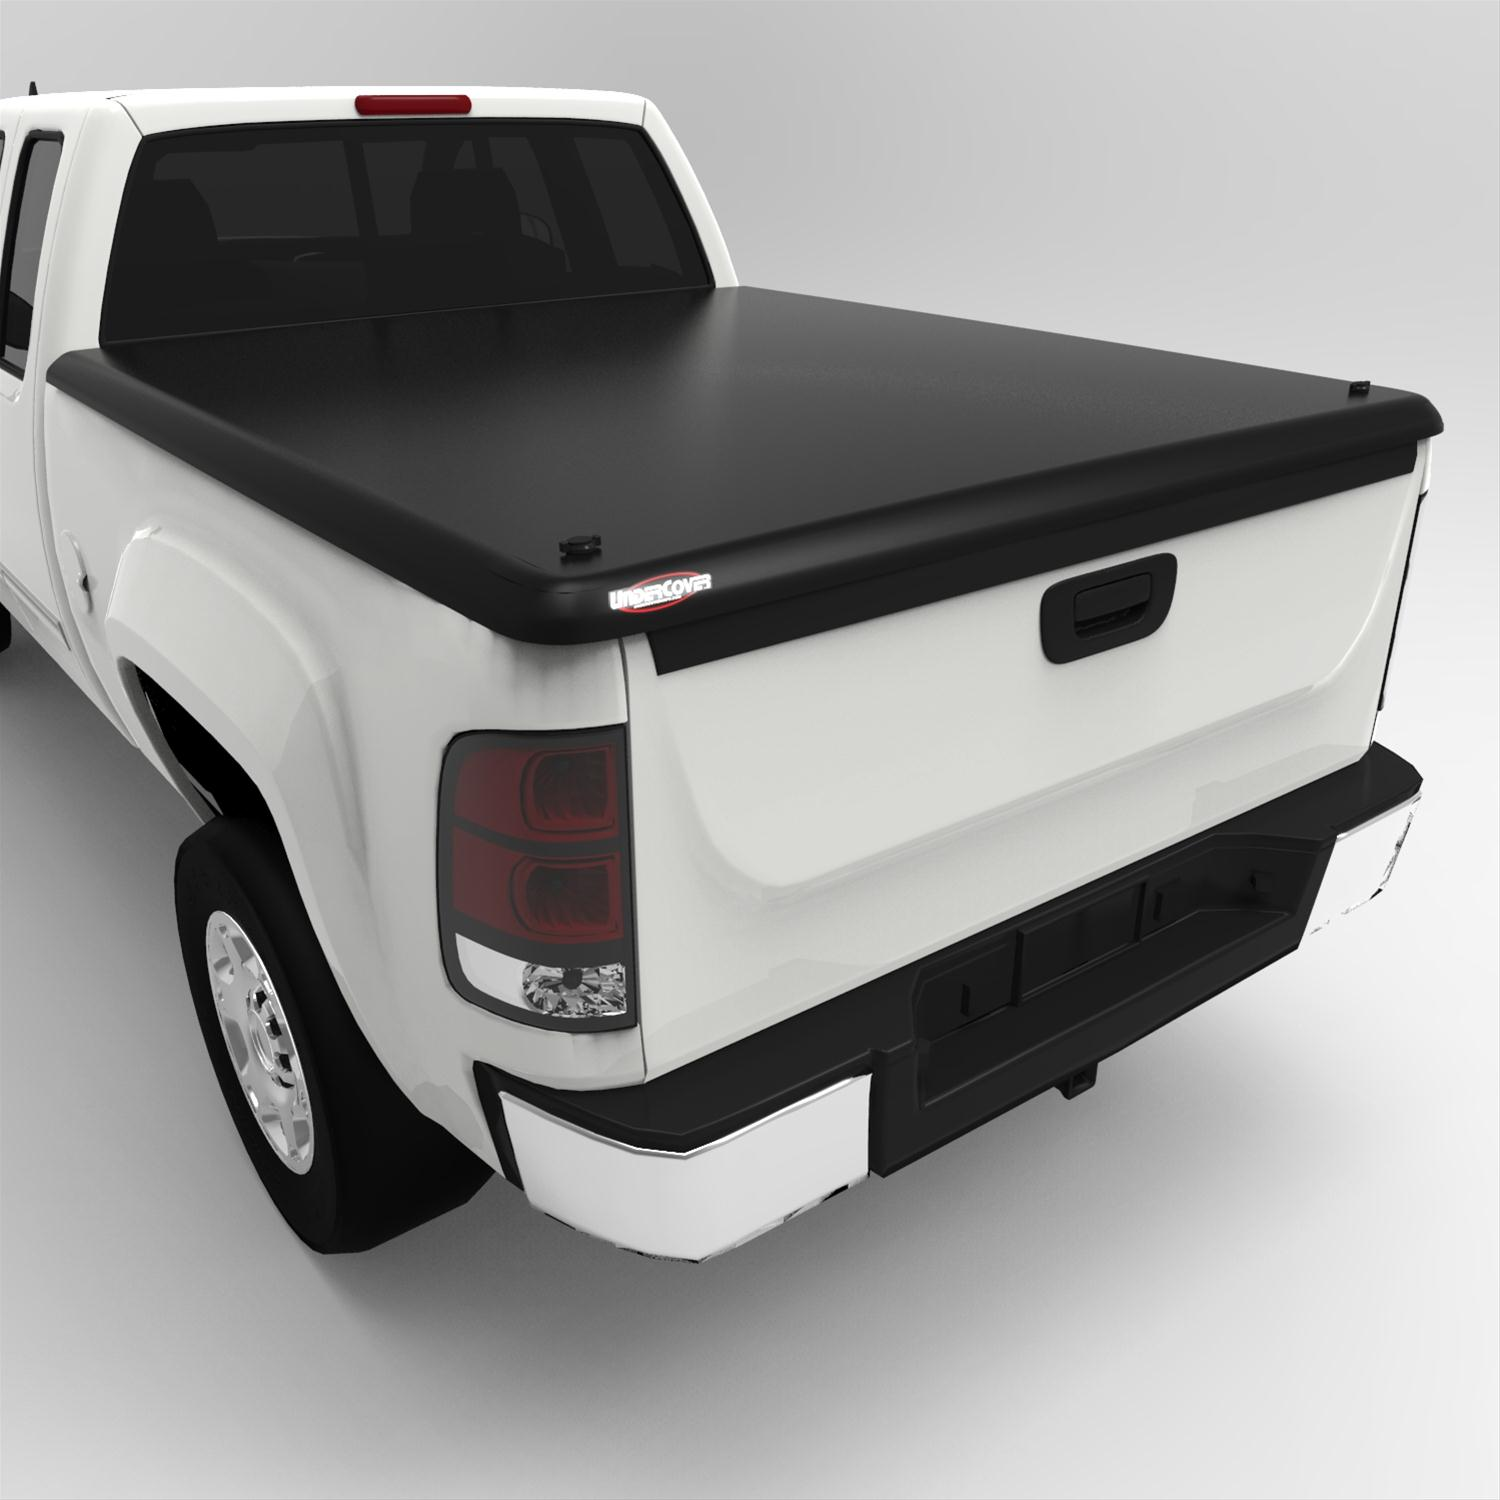 UnderCover Classic Tonneau Covers UC5020 Free Shipping on Orders